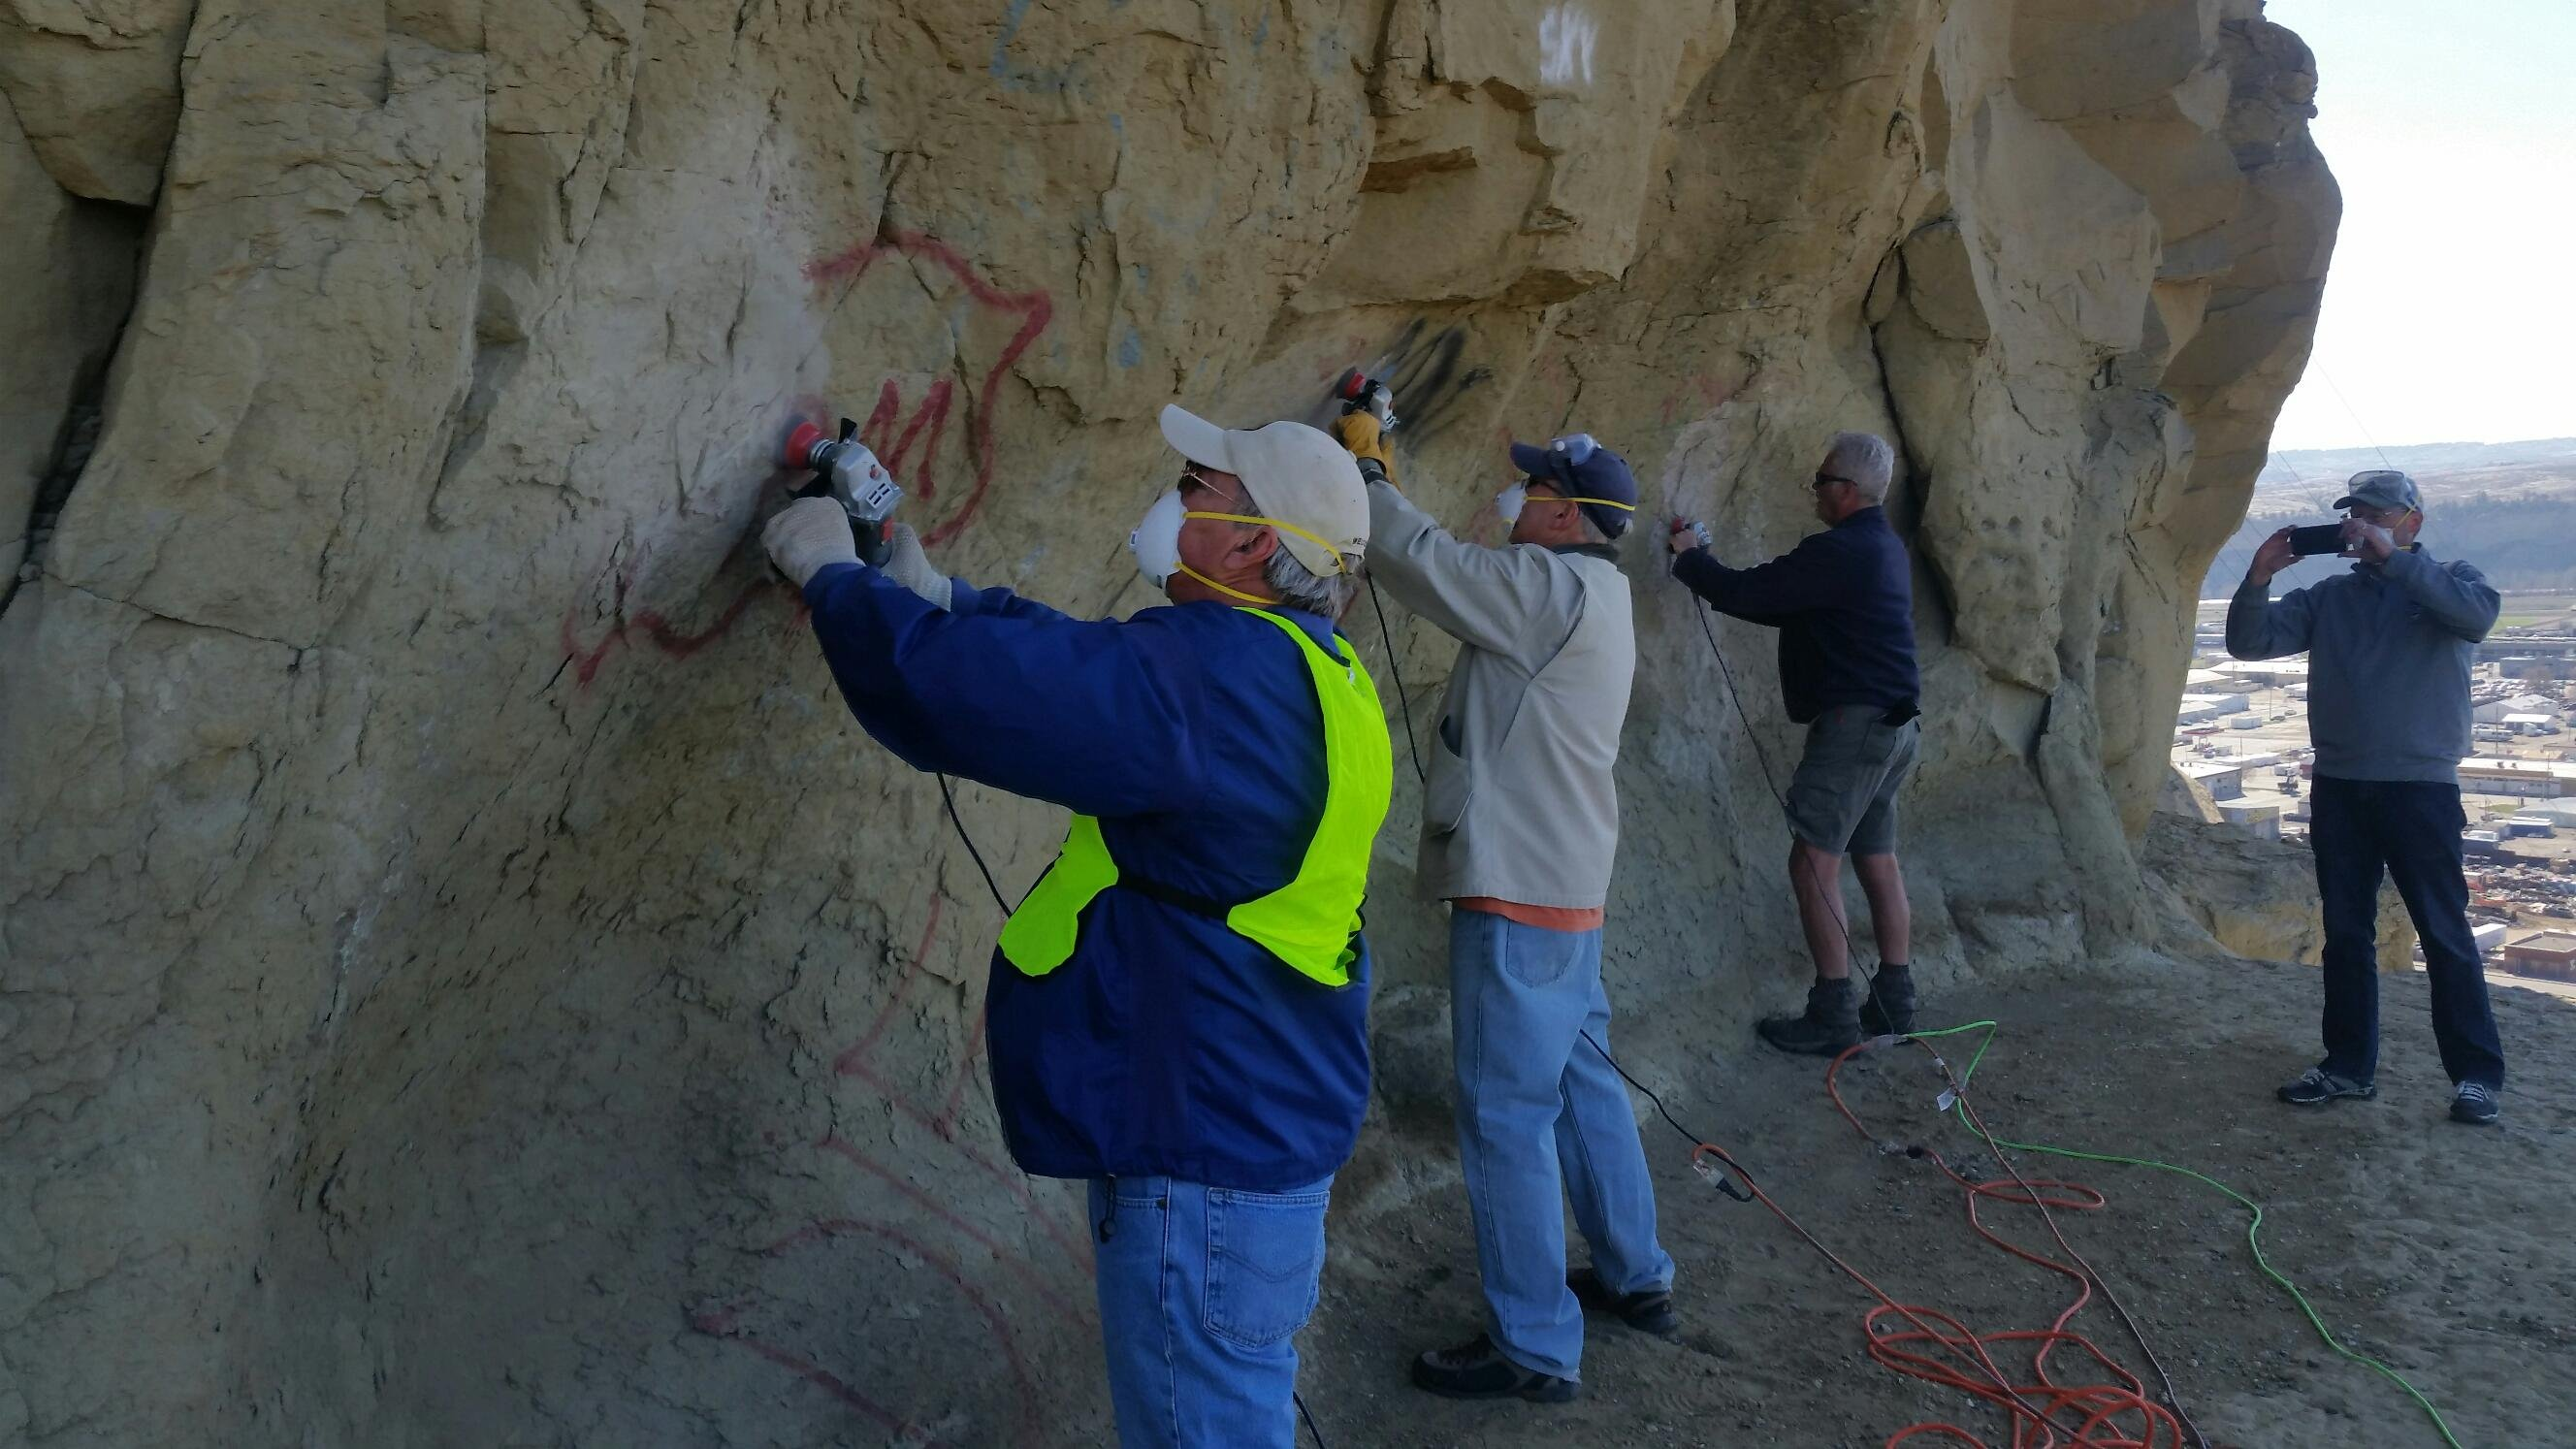 Rotarians Frank Witt, Jon Doak and Dave Lundin work with grinders remove graffiti from the sandstone face the Rims. (Photo courtesy of Christ Waite)